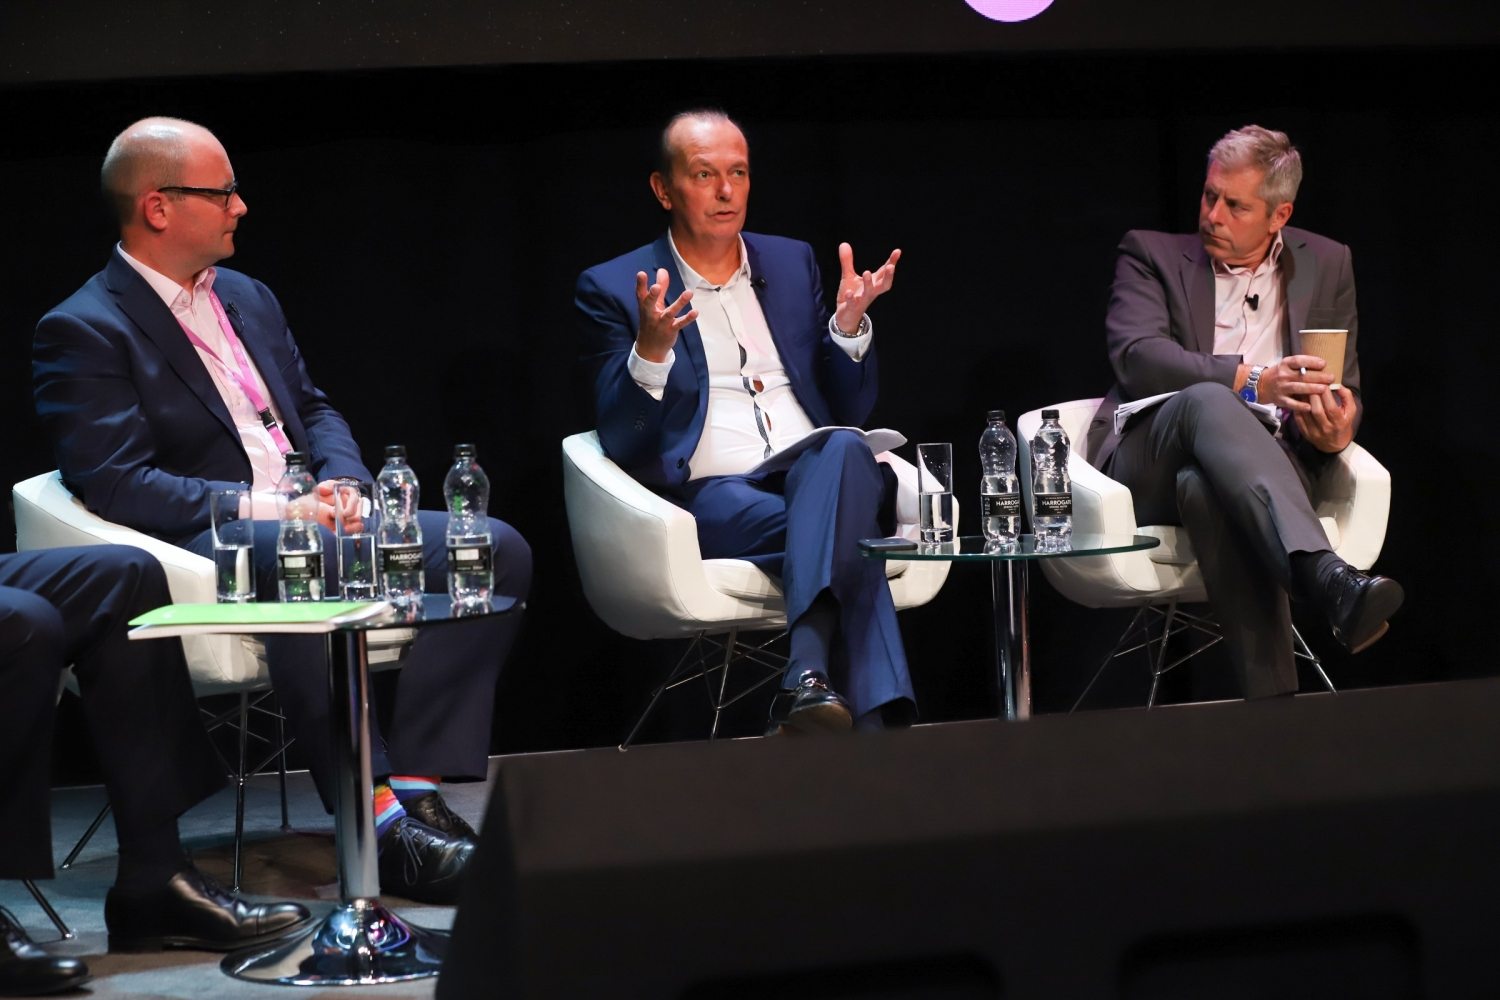 We need to talk about diesel panel debate at the Jaguar Land Rover Tech Fest 2017